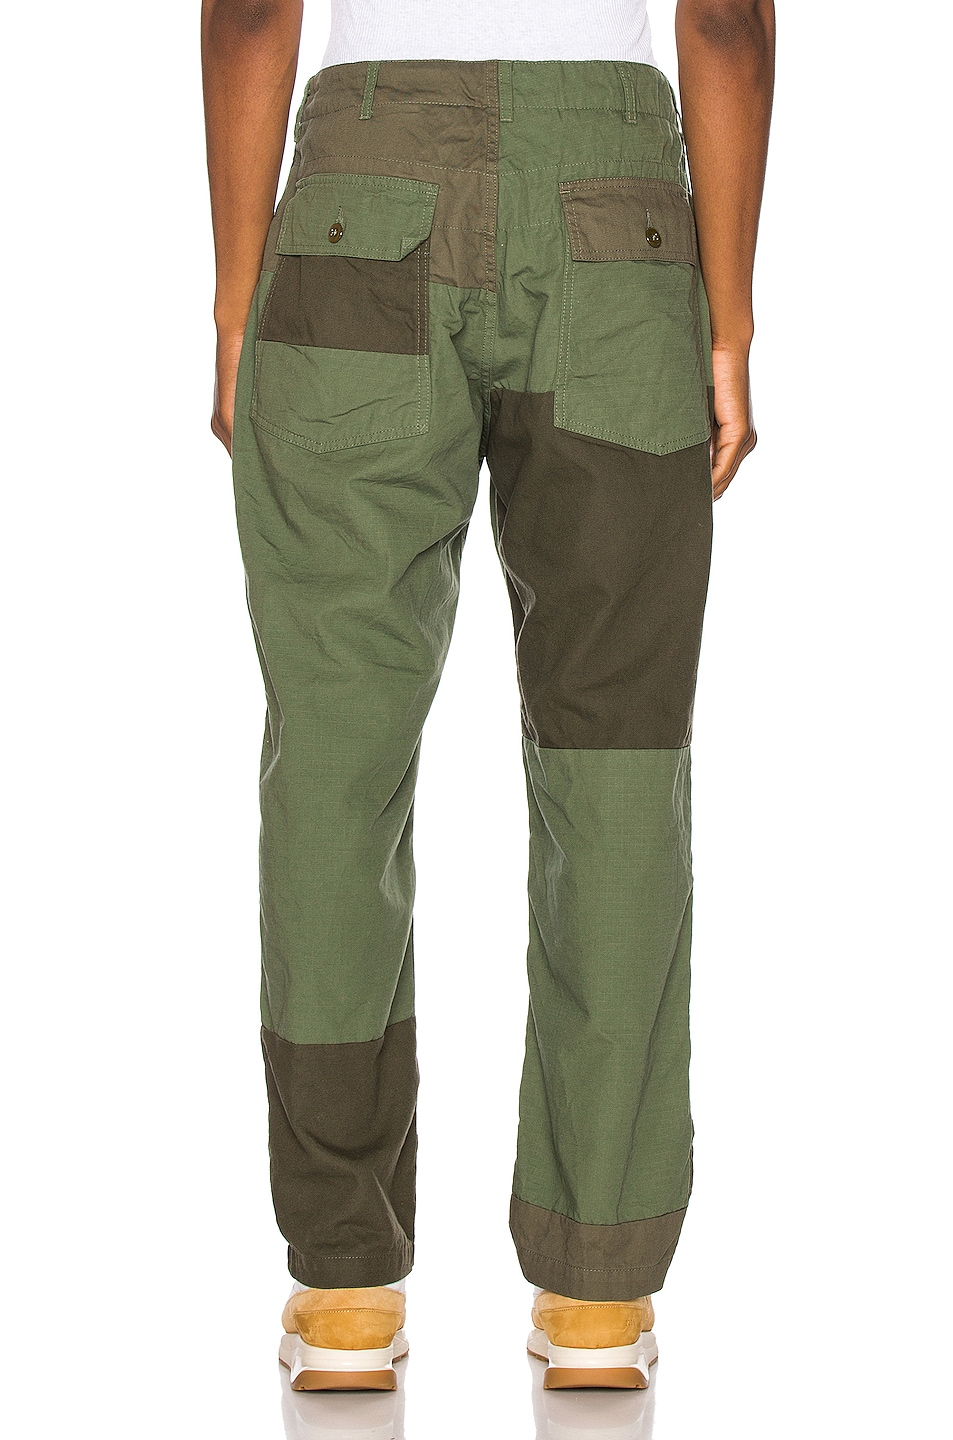 Image 4 of Engineered Garments Fatigue Pant Cotton Ripstop in Olive